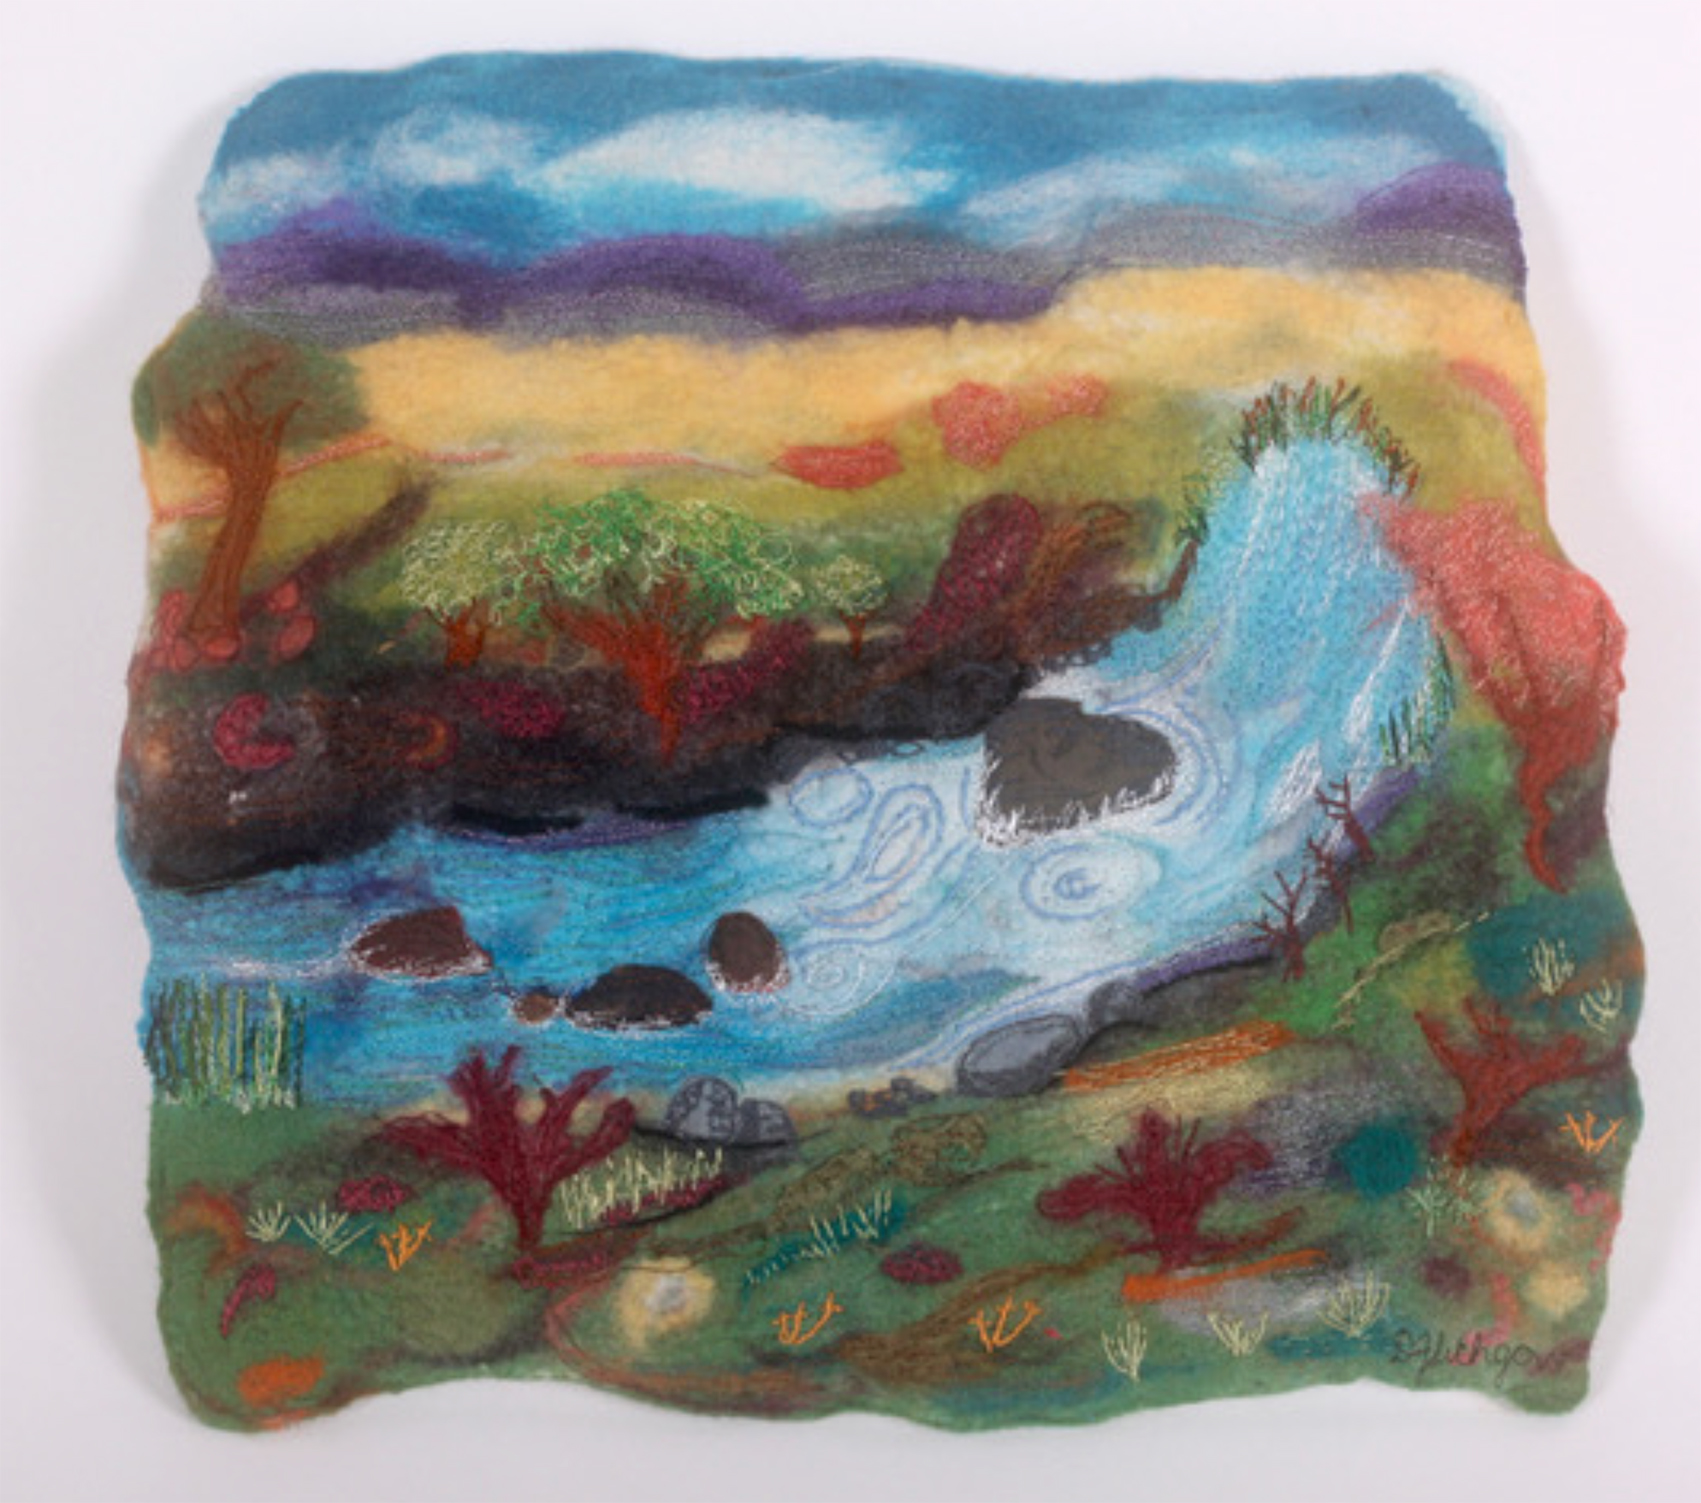 The Corner Store Gallery - 2D Felted Wall Works with Denise Lithgow